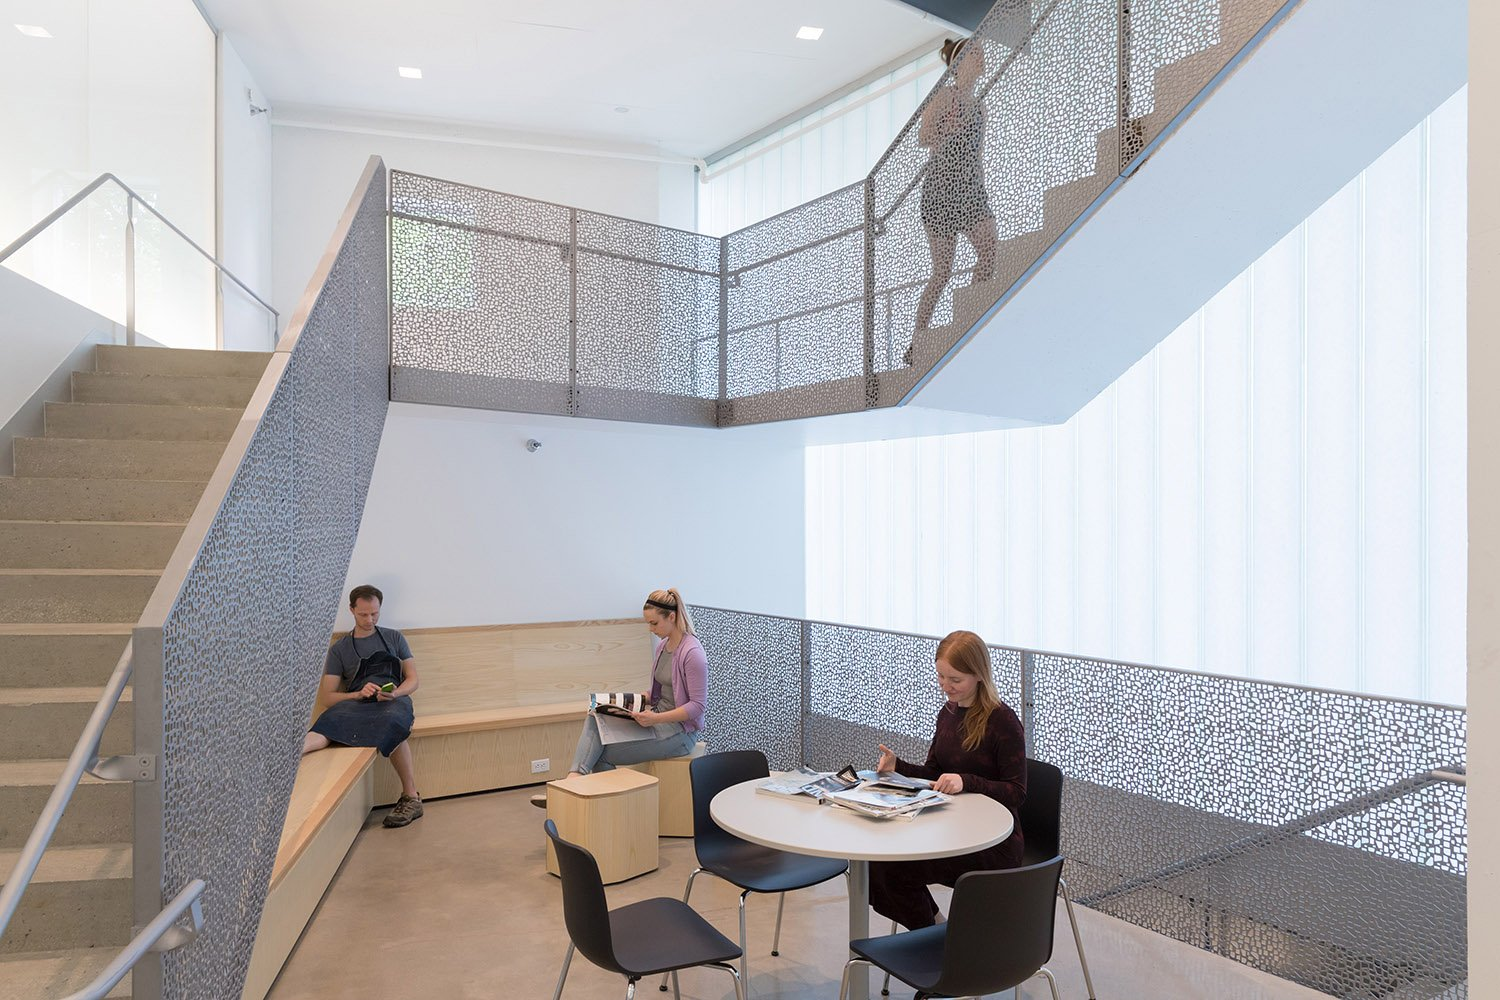 Stairs as vertical social condensors, shaped to enable informal meeting, interaction and discussion.